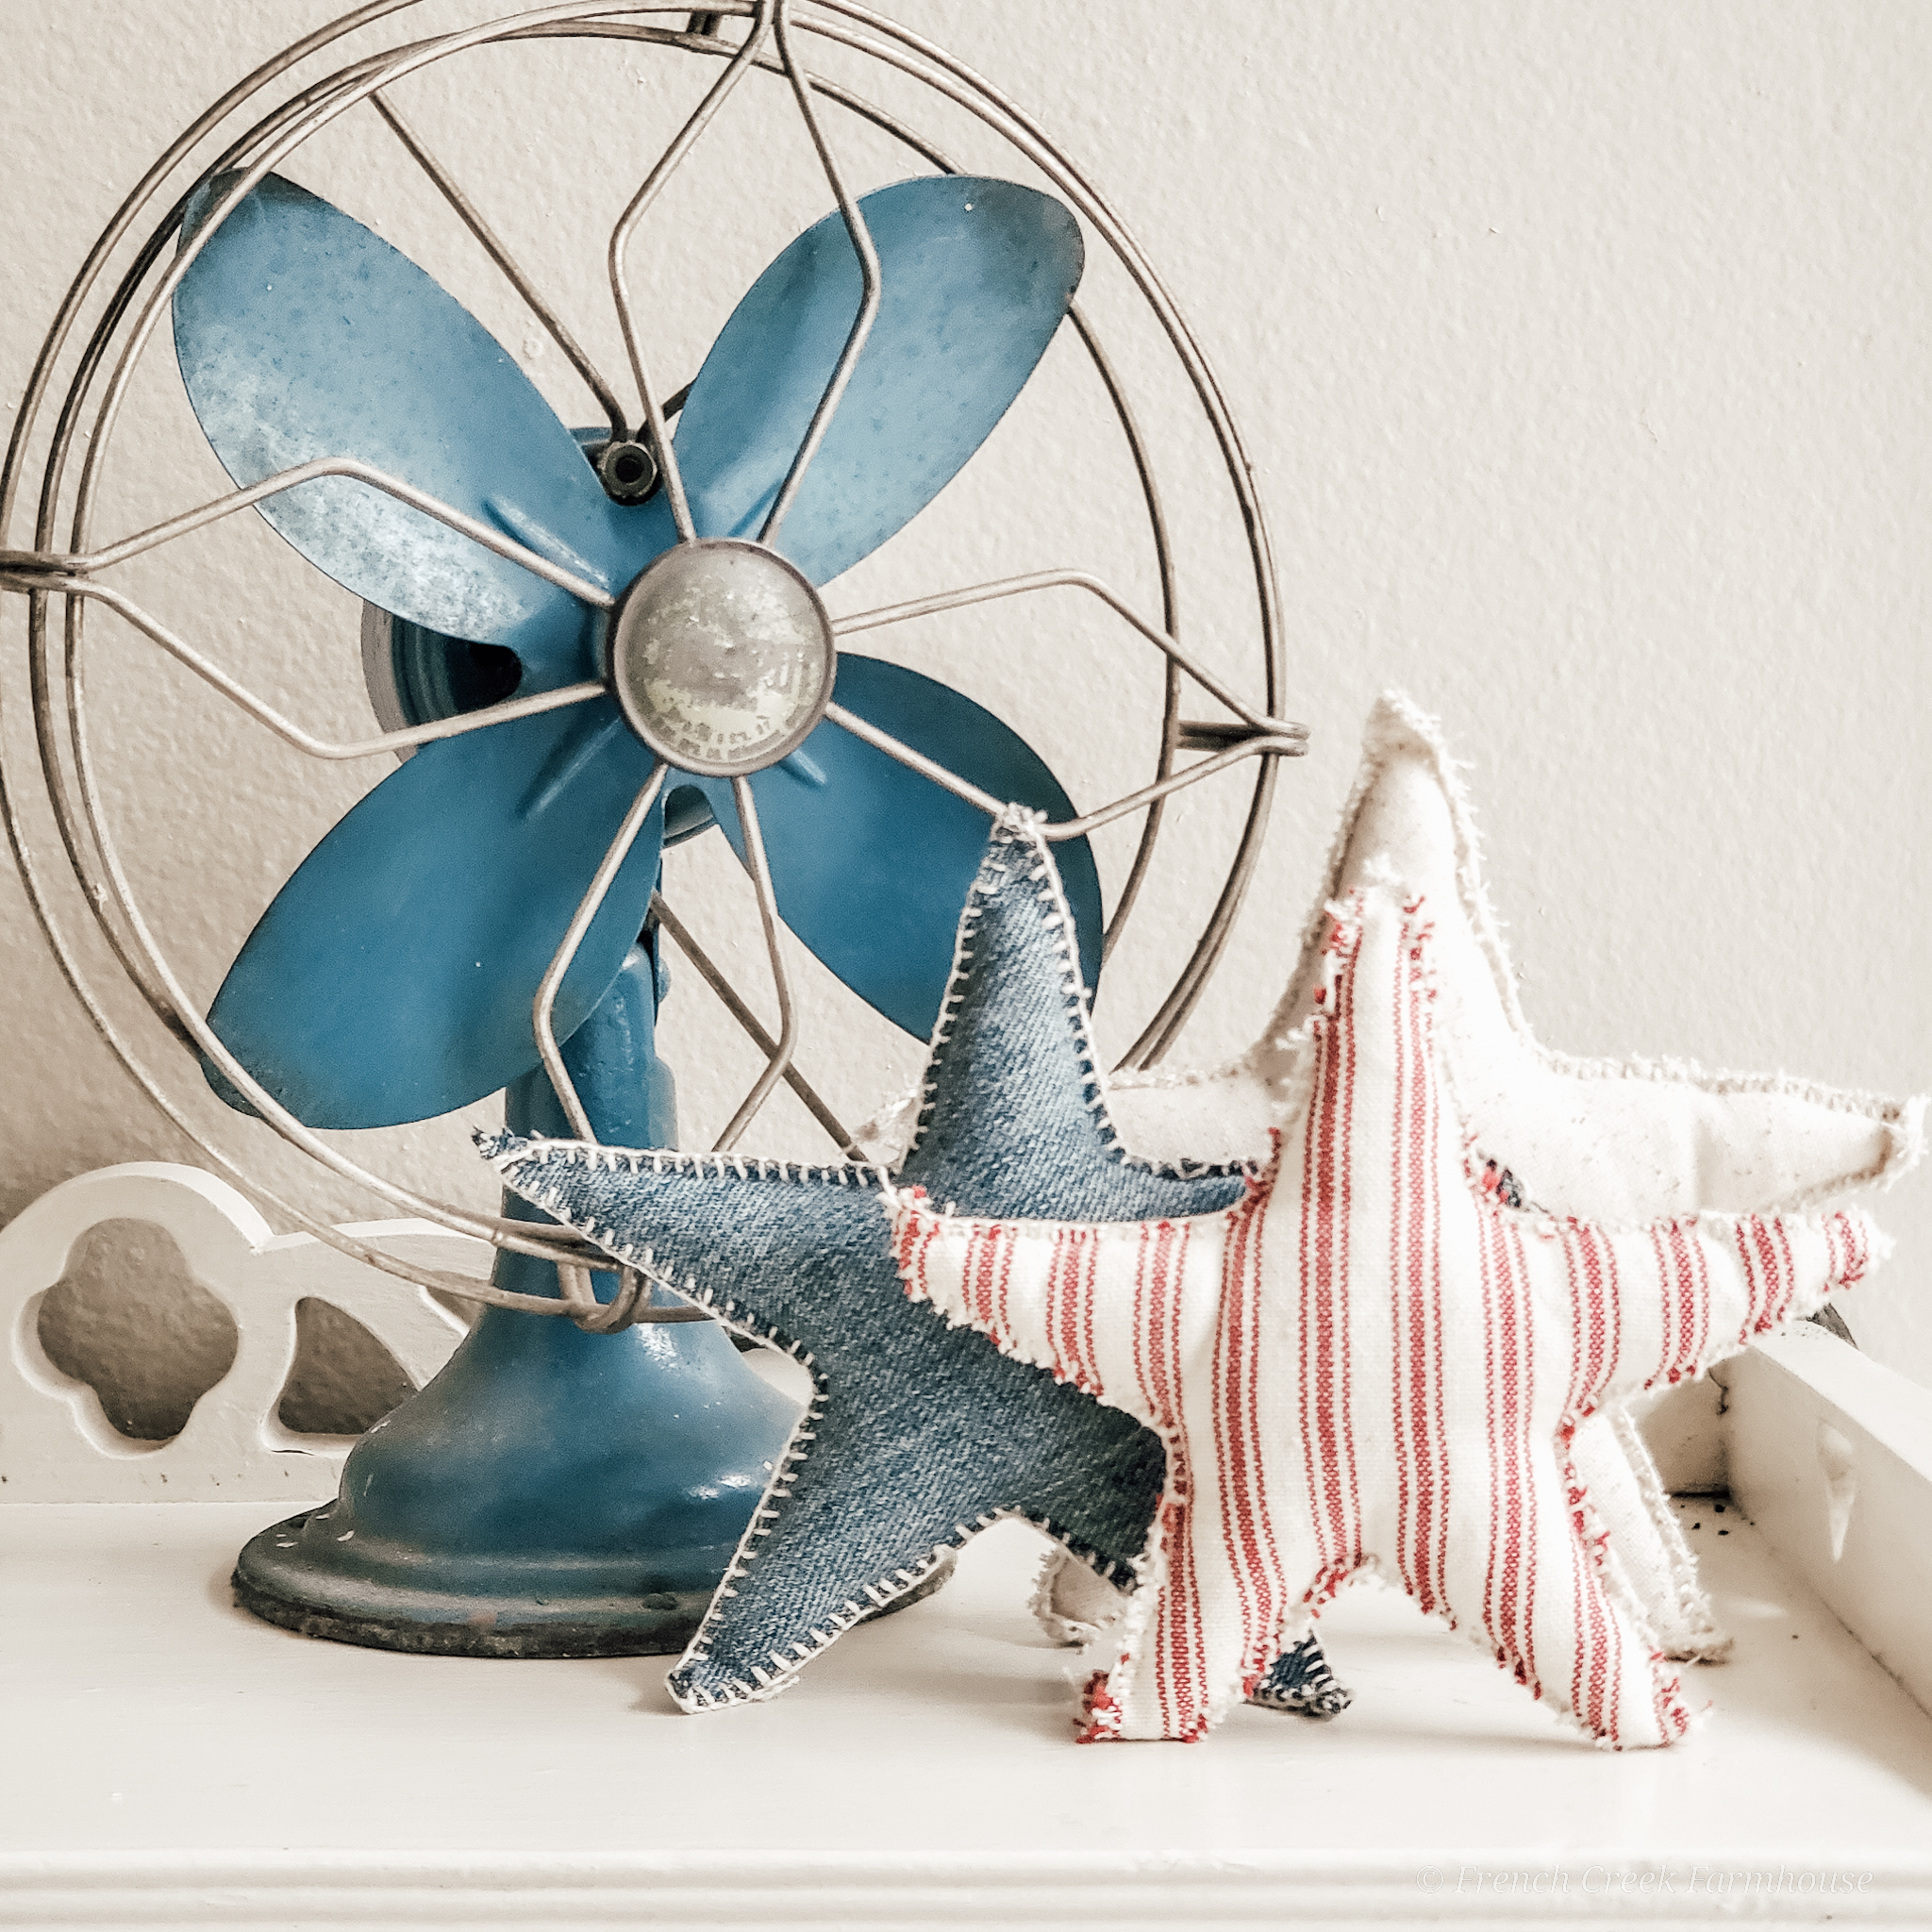 Vintage blue electric fan decorated for 4th of July